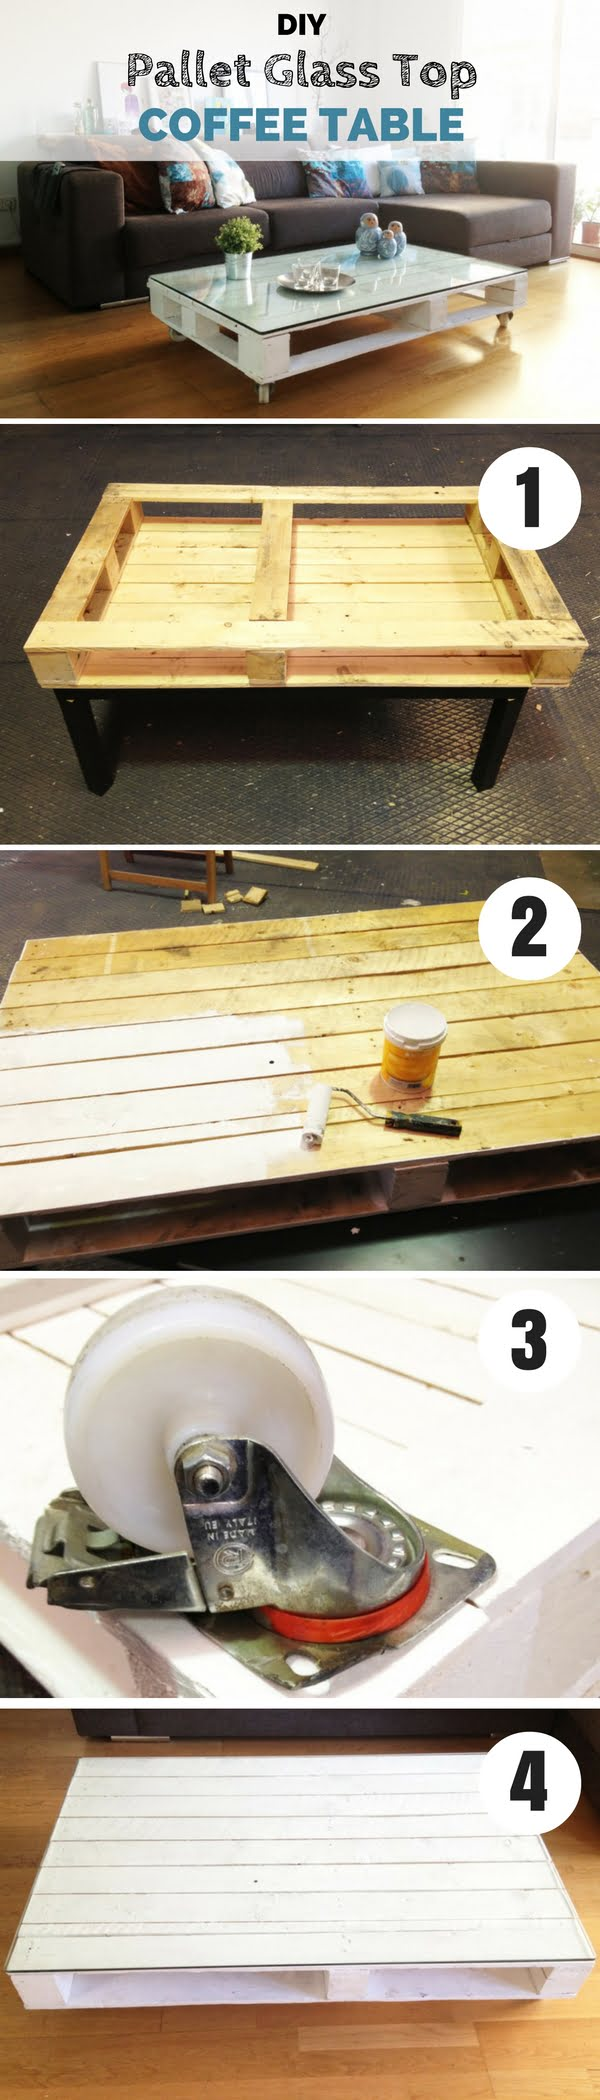 Check out how to make this easy DIY Pallet Glass Top Coffee Table